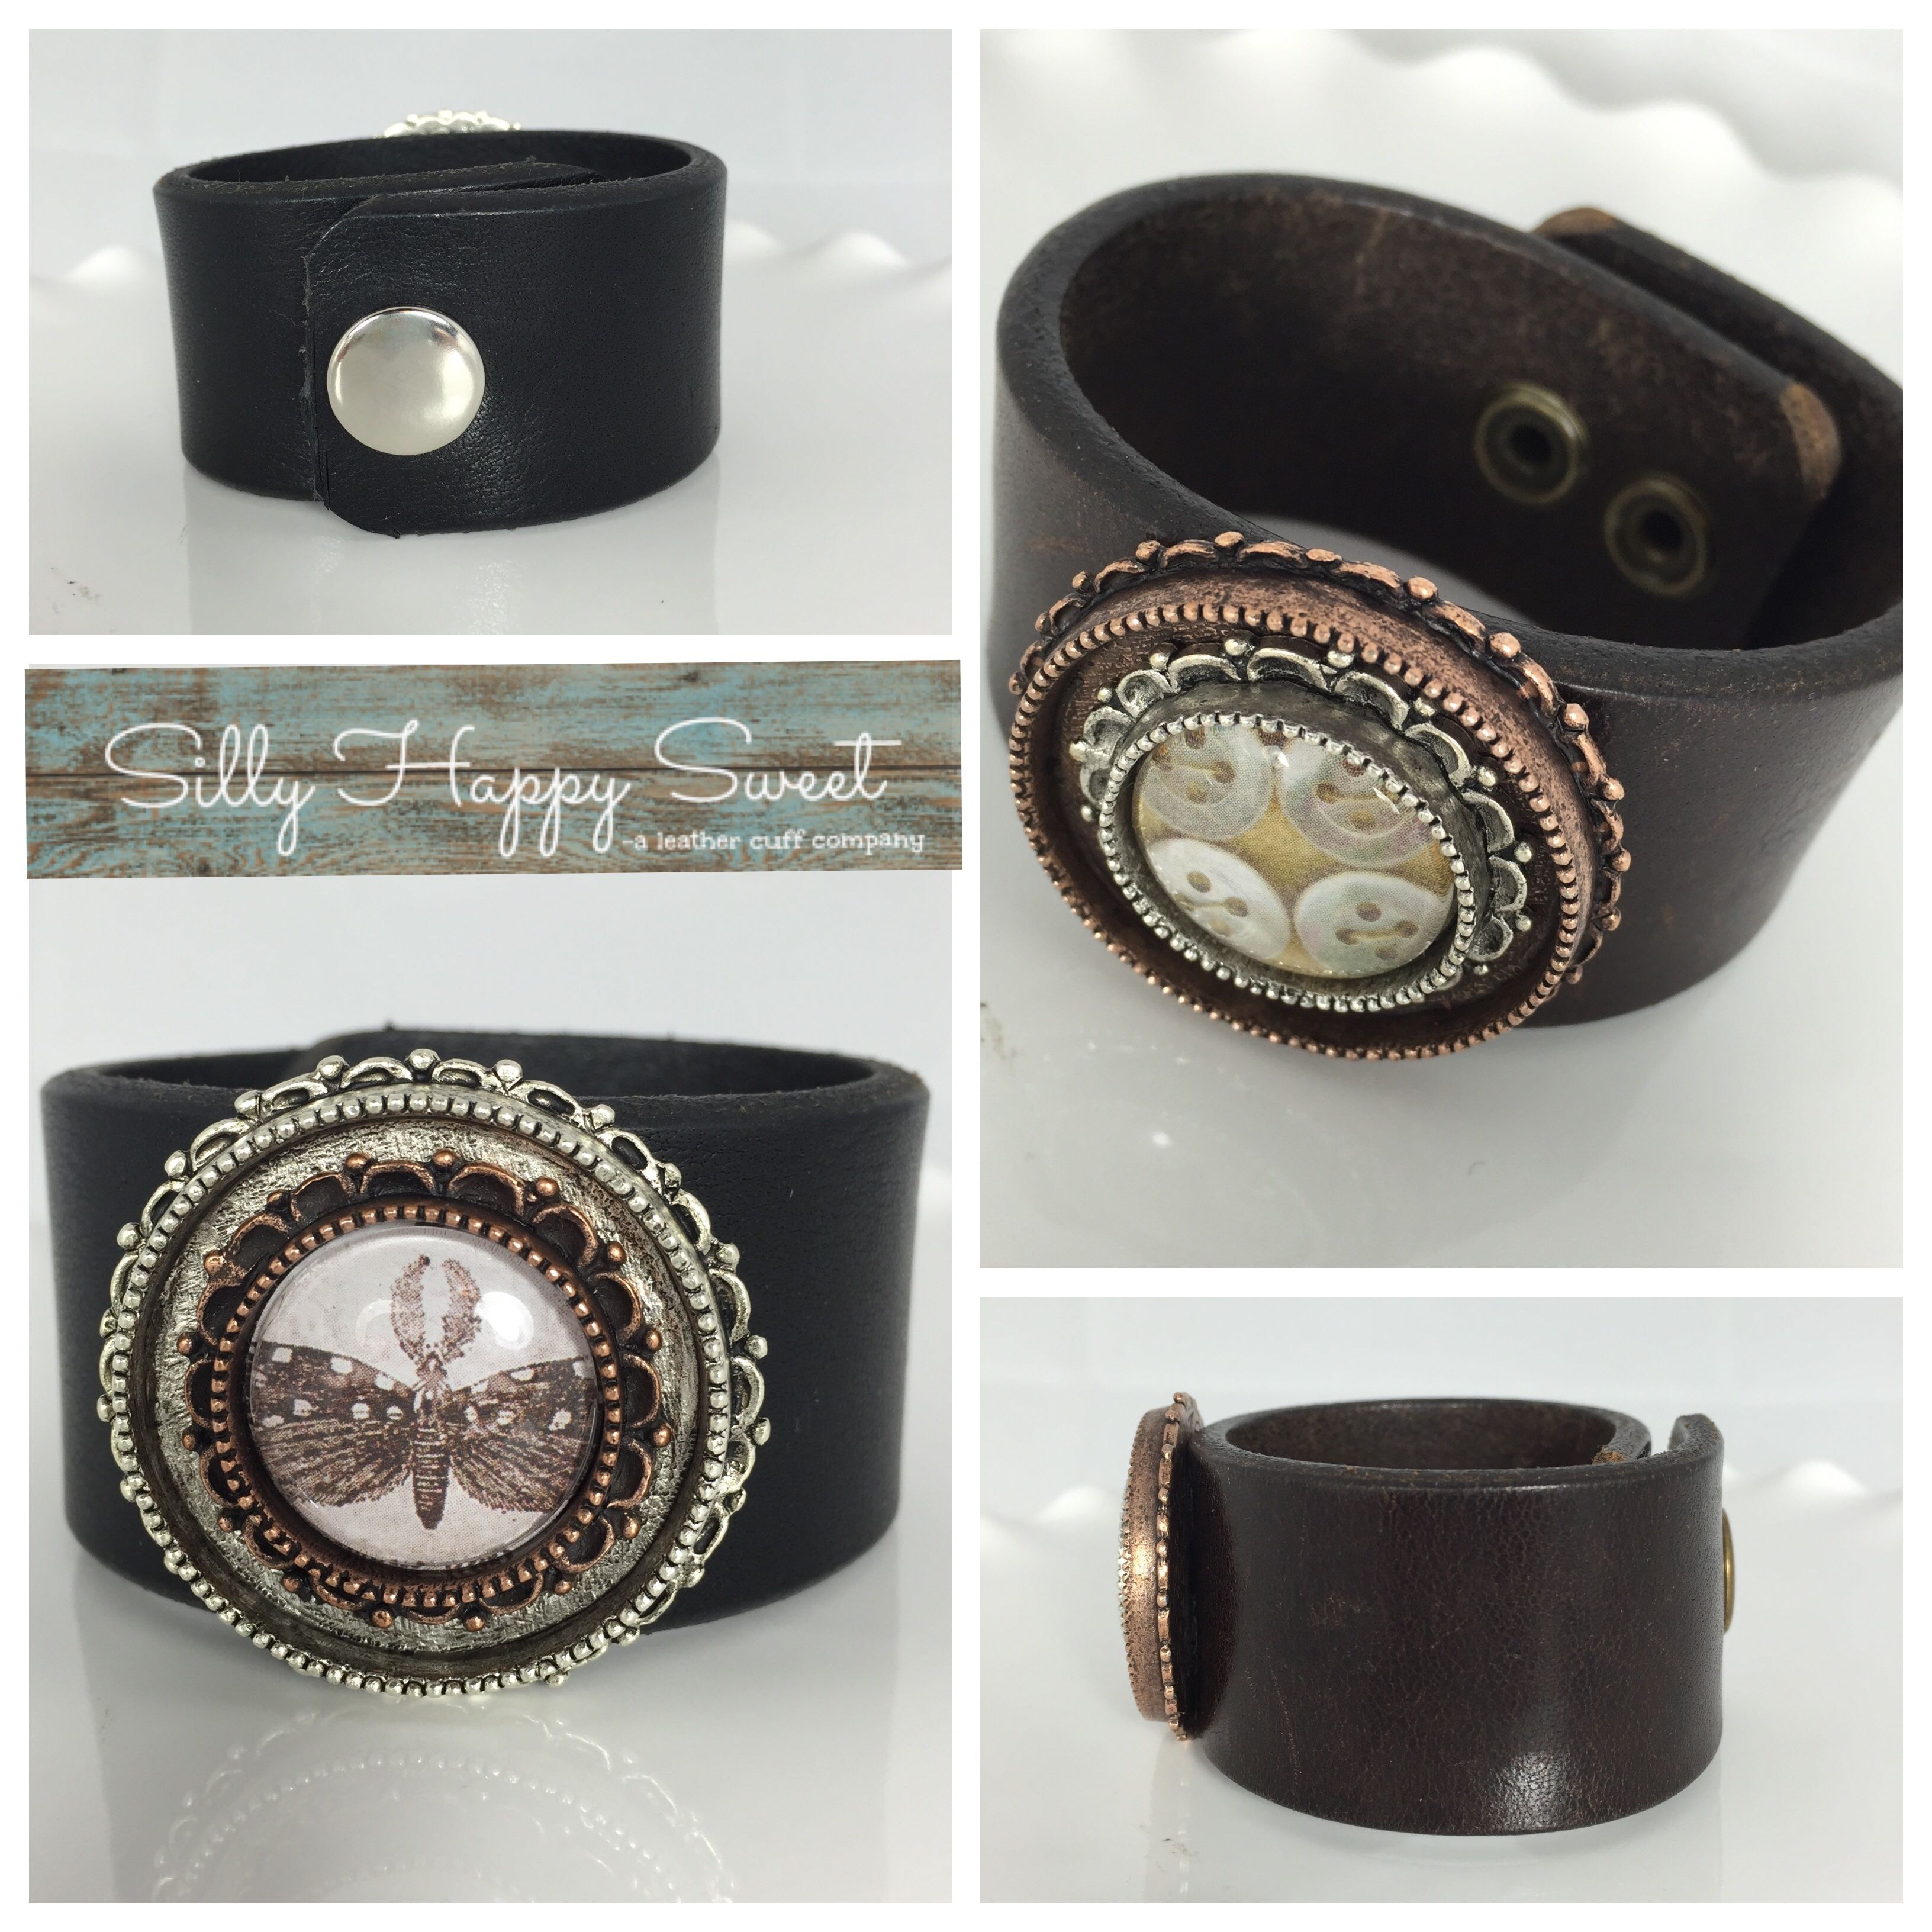 Designer custom leather cuffs with beautiful bezels. Customizable--you pick center image. Available in brown and black leather.